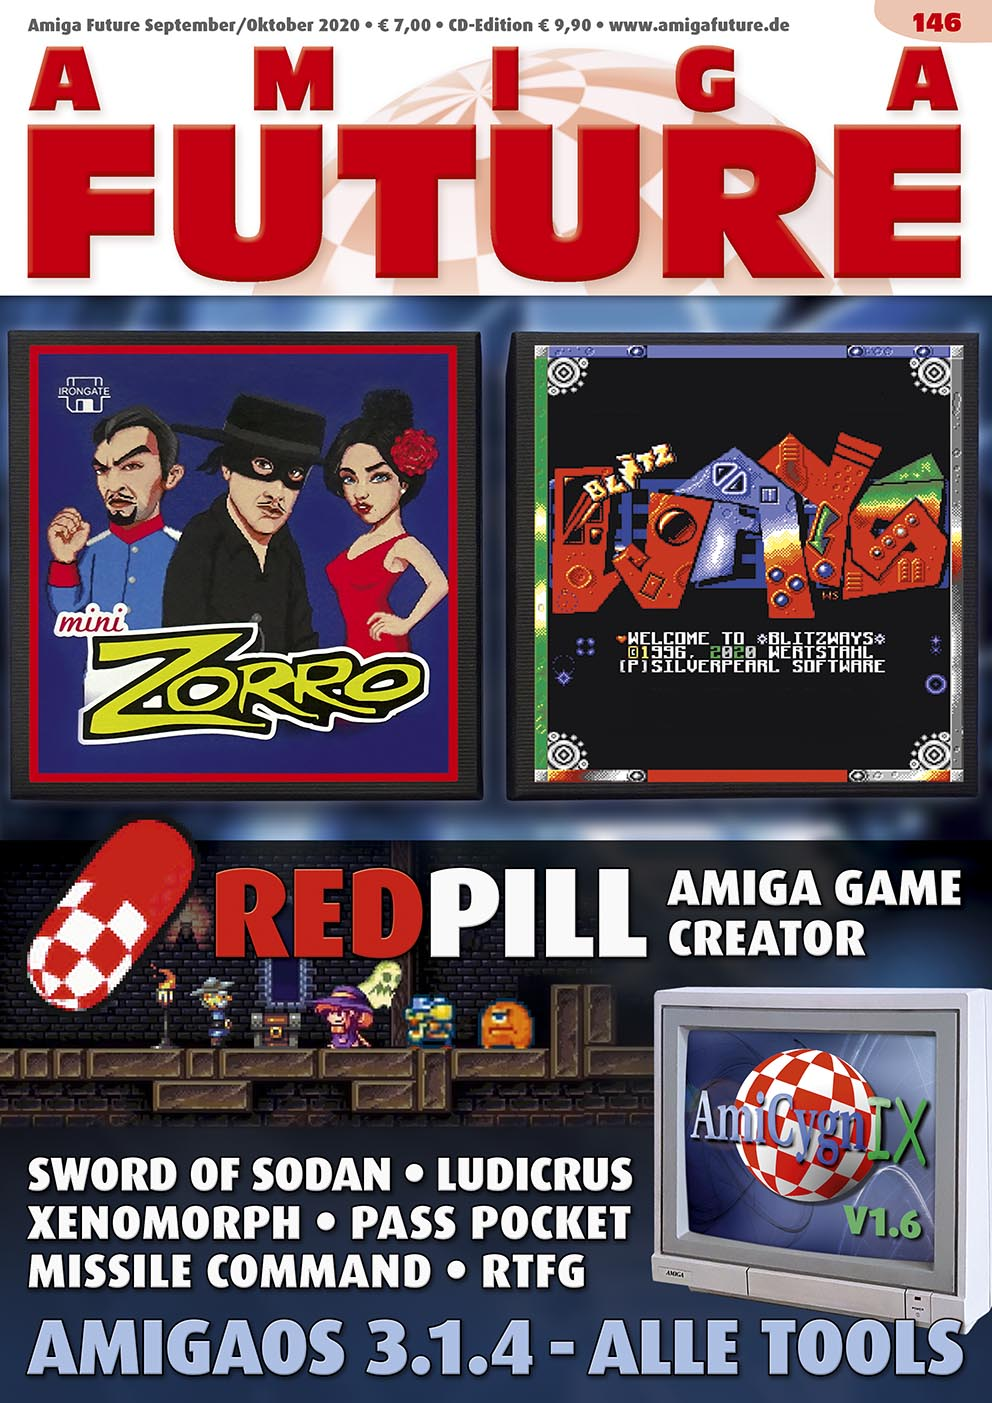 Amiga Future Issue 146